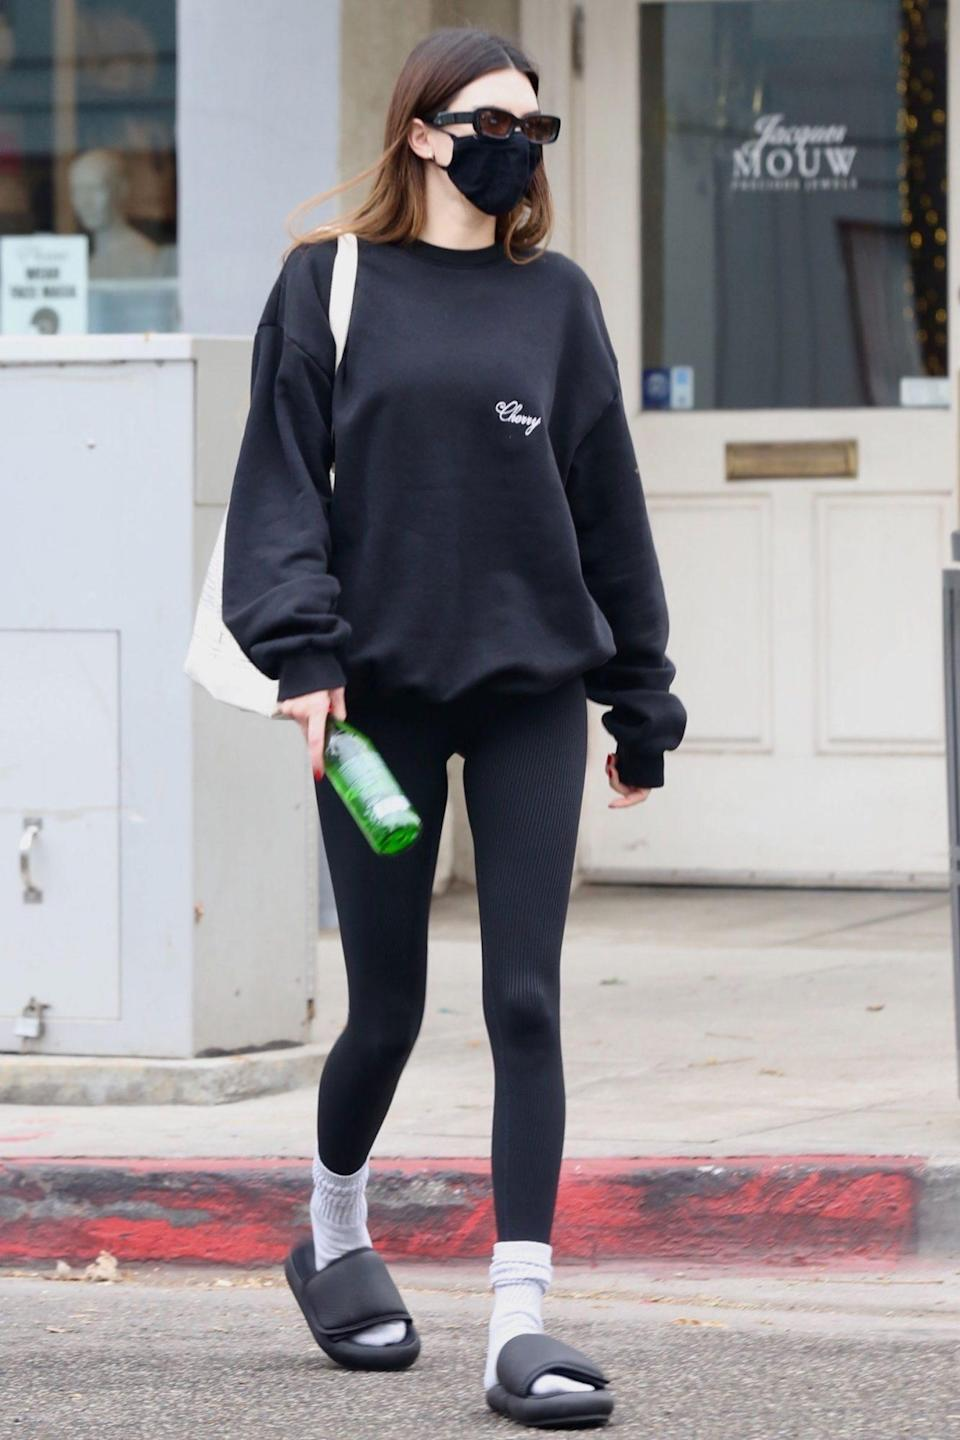 <p>Kendall Jenner is seen leaving lunch with friends in black leggings and a sweatshirt on Monday in Beverly Hills. </p>